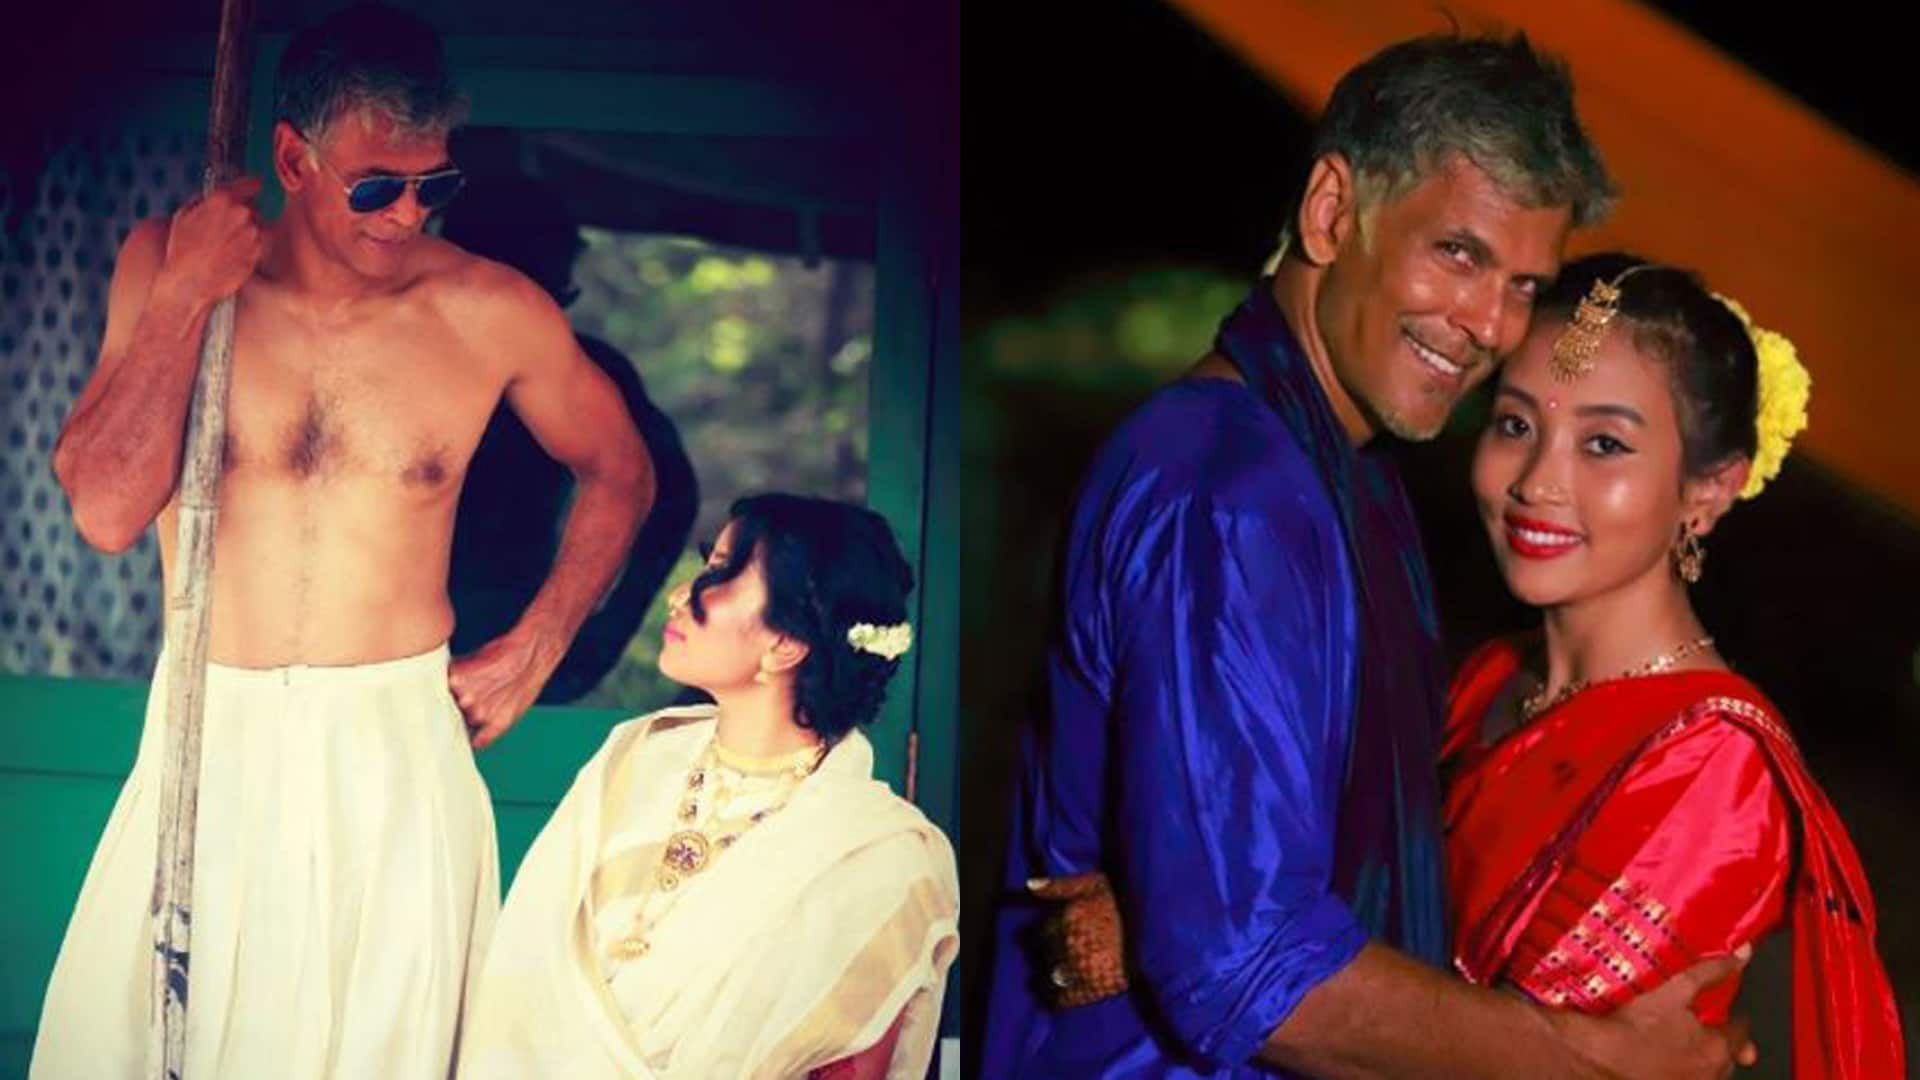 Here is Milind Soman's ex-girlfriend's reaction to his wedding with 27-year old lover